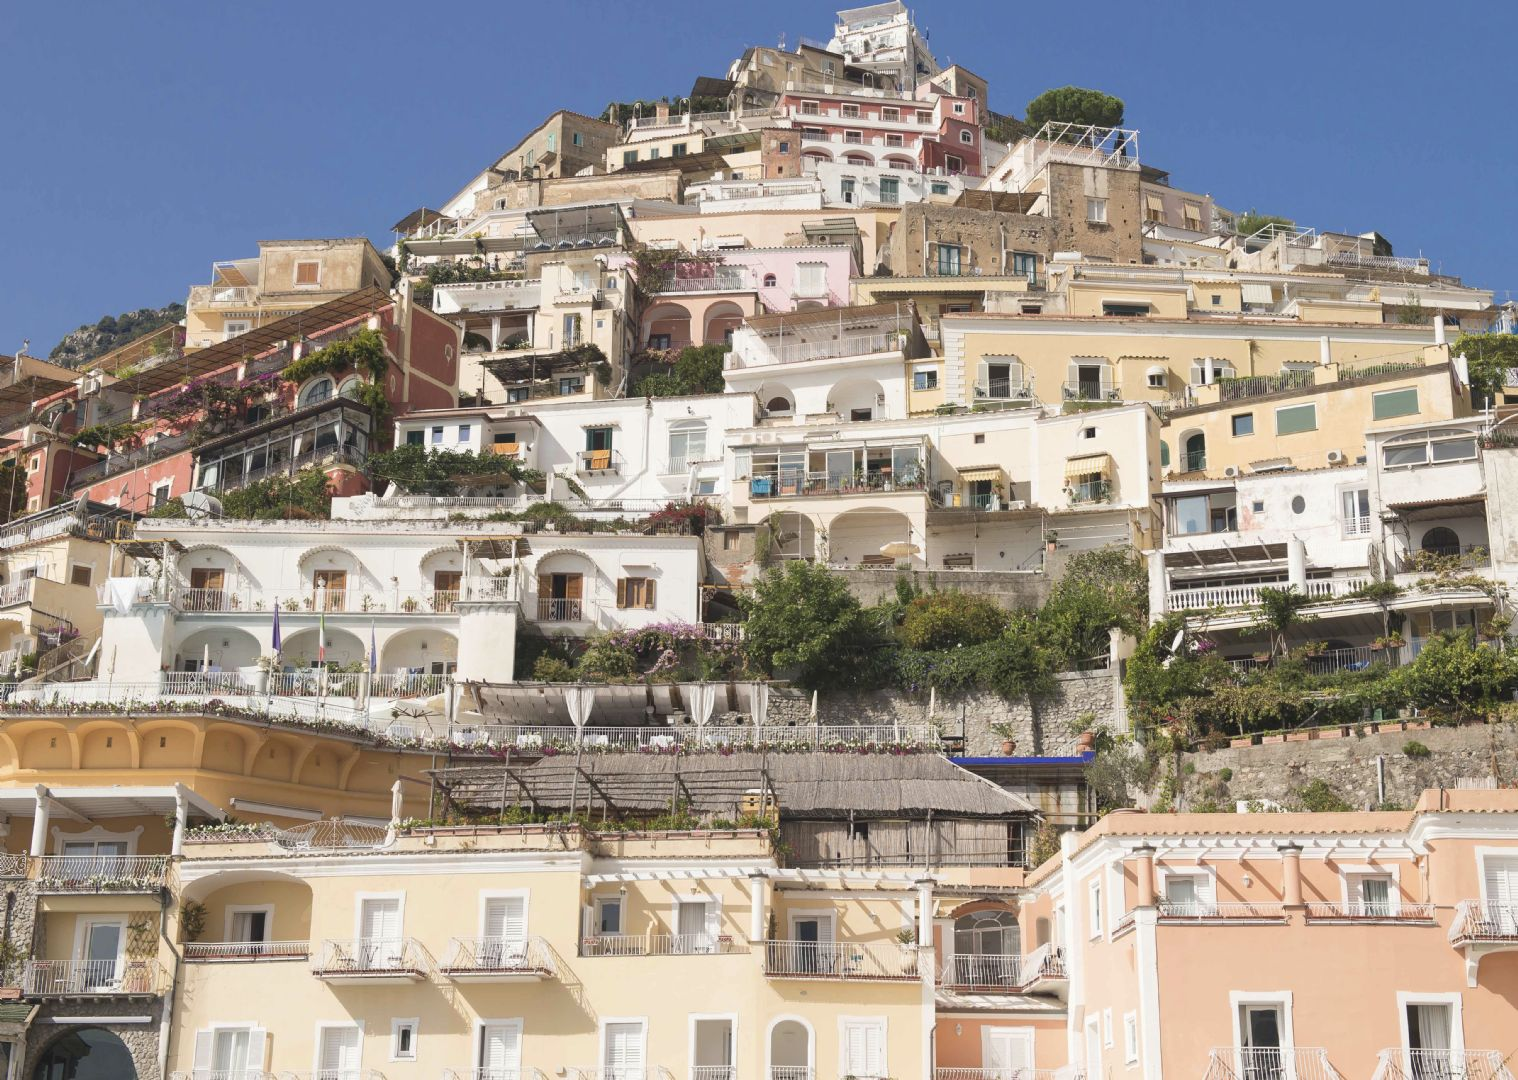 amalfi holiday (88 of 93).jpg - Italy - Cilento and The Amalfi Coast - Guided Leisure Cycling Holiday - Italia Leisure and Family Cycling